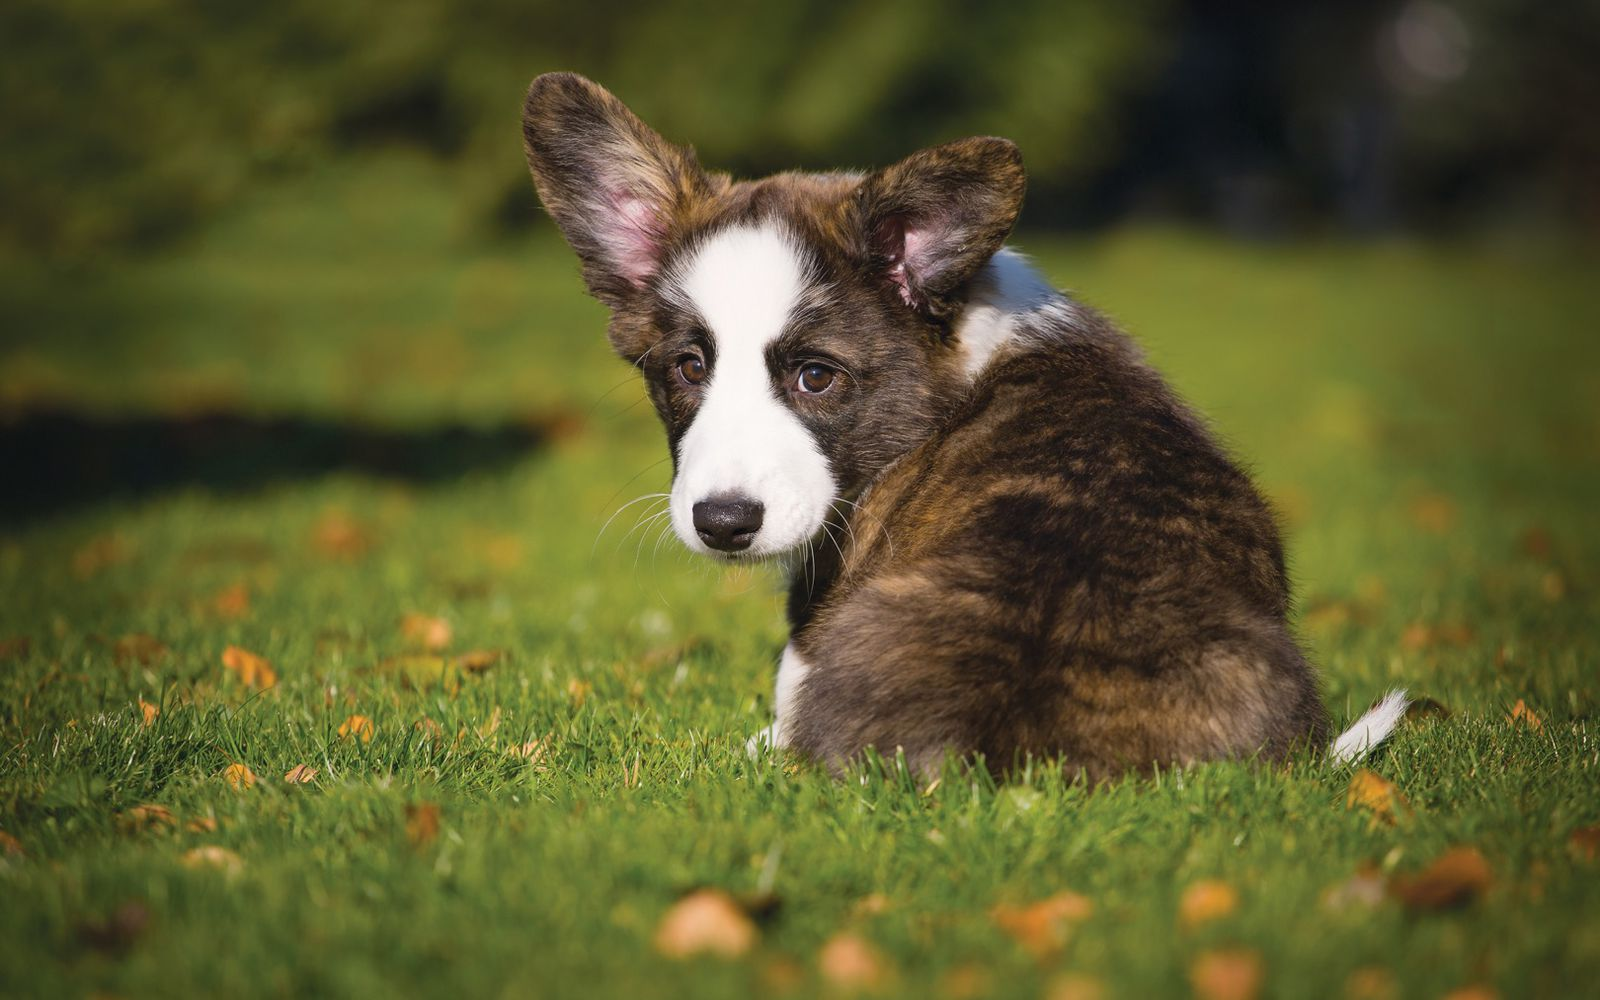 Cardigan Welsh Corgi - Puppy